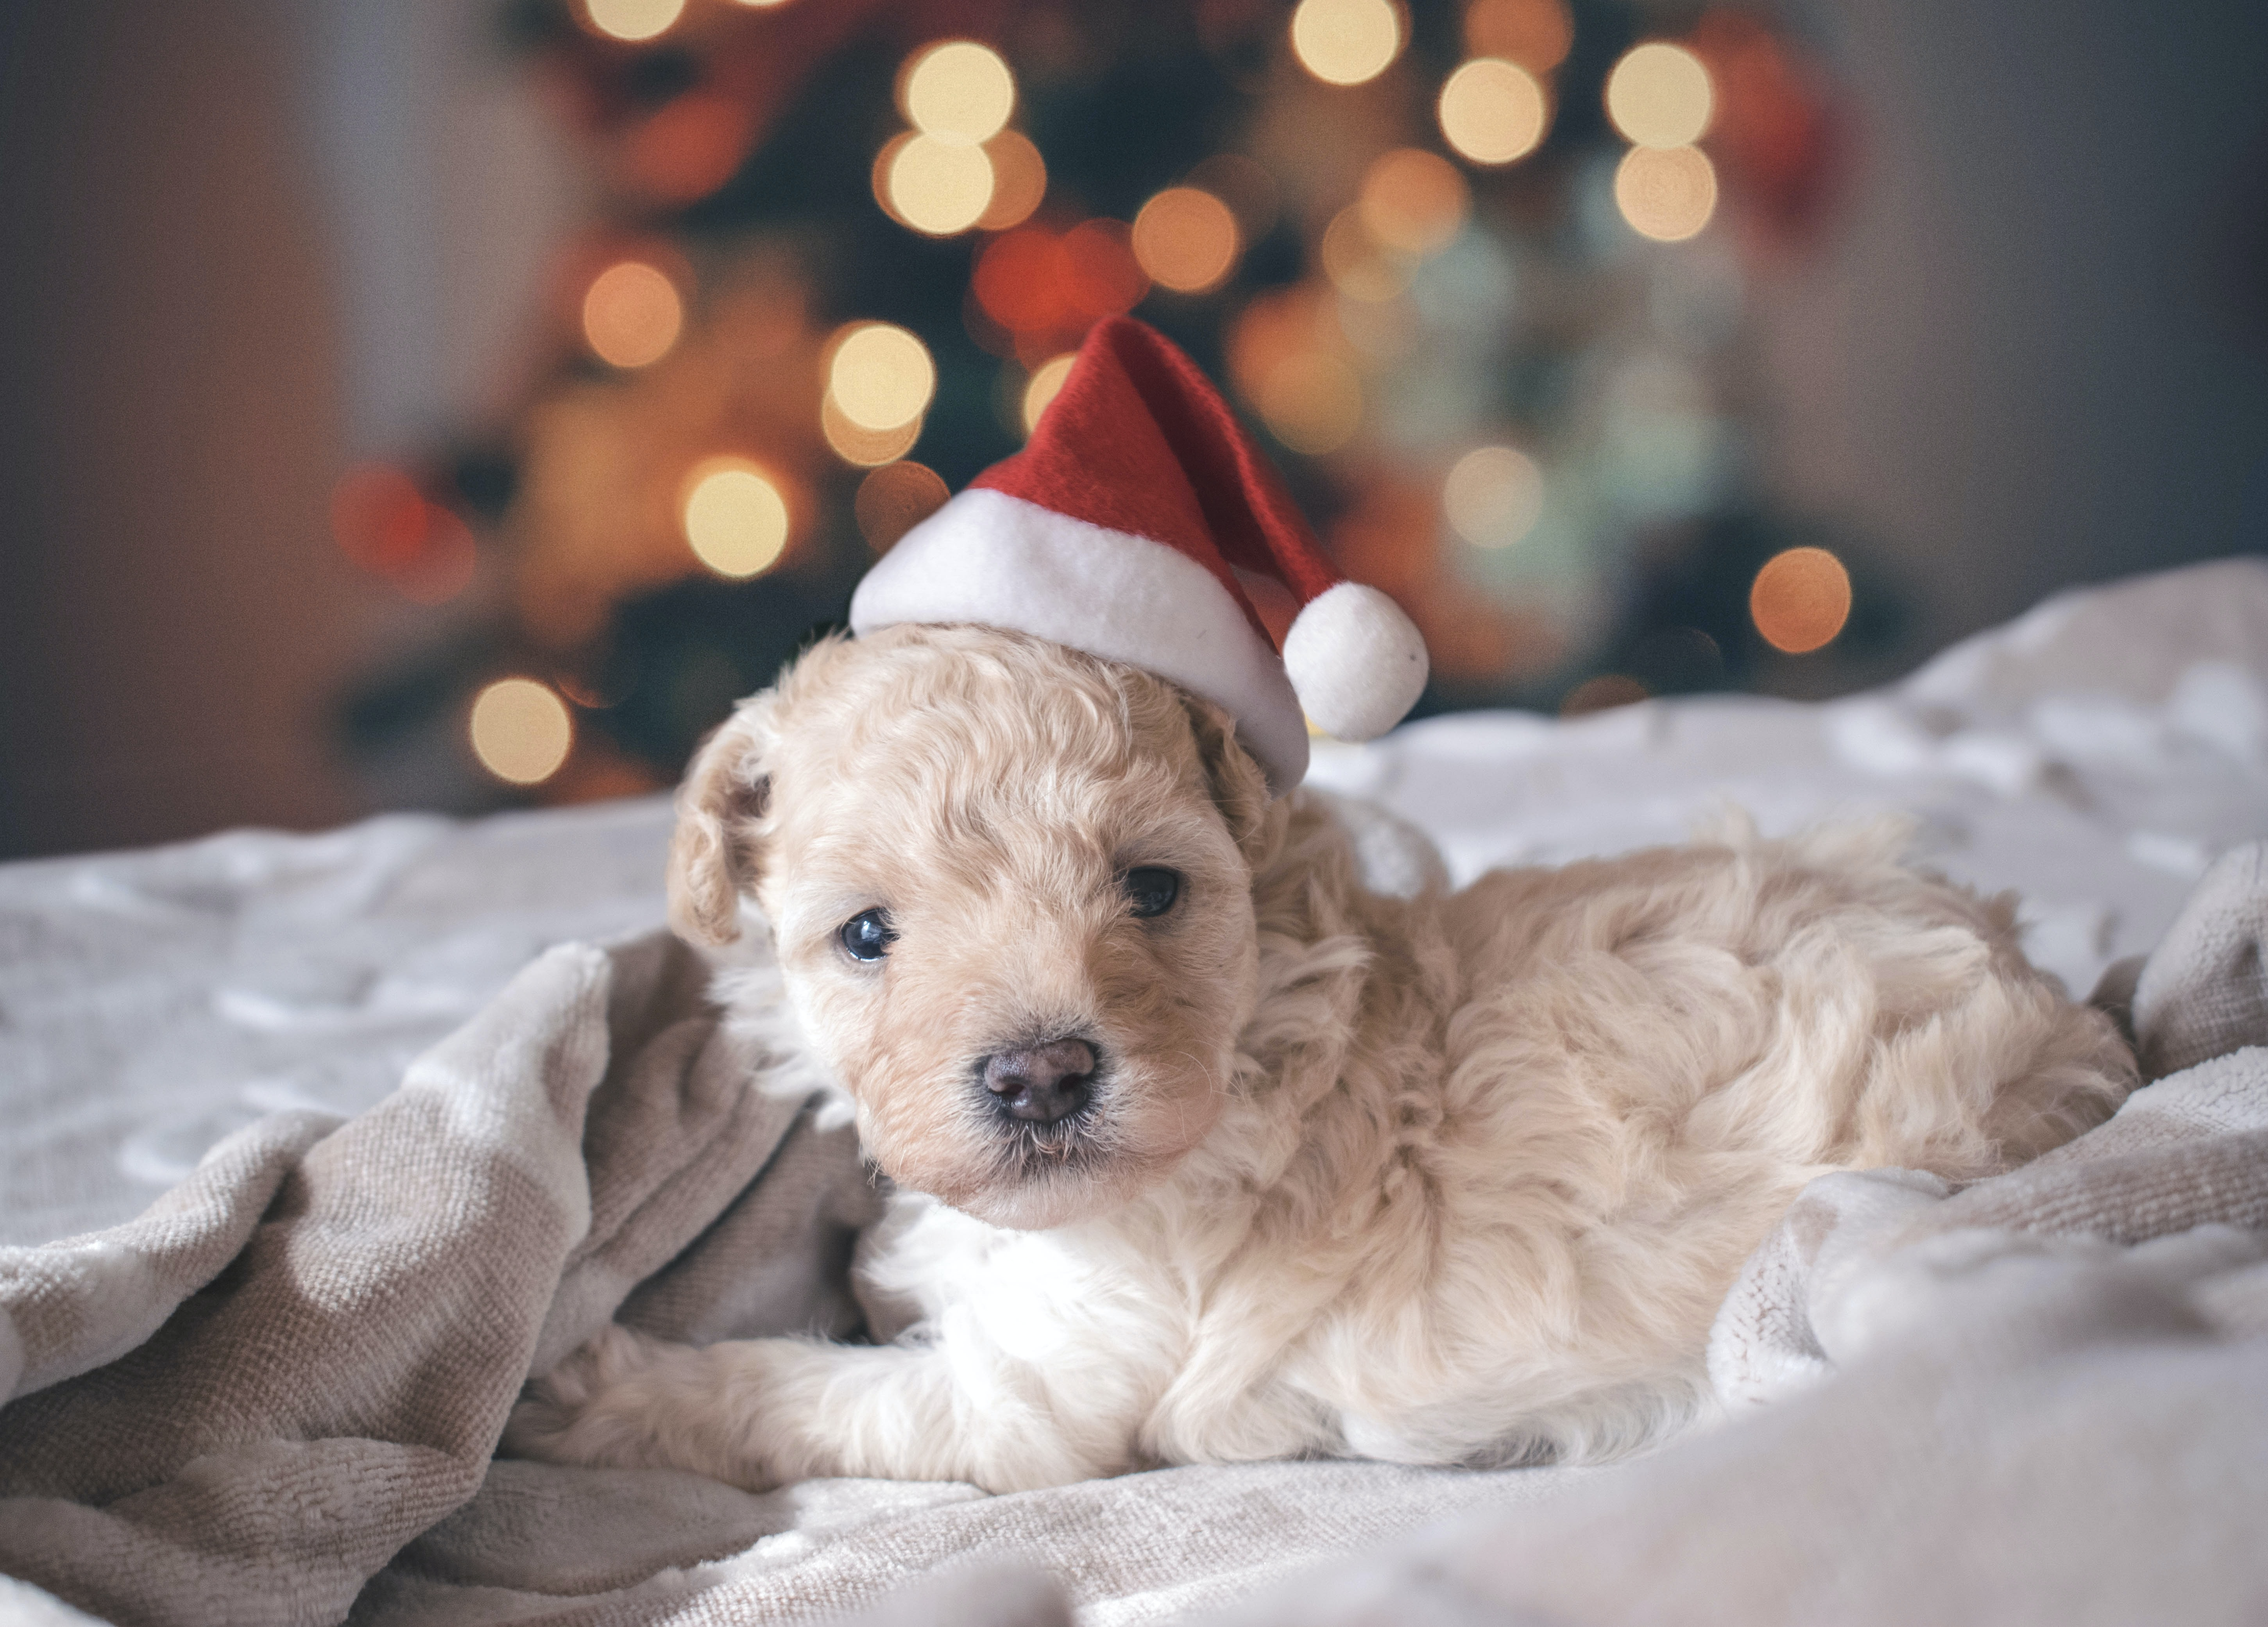 Are you getting a cute puppy for Christmas?